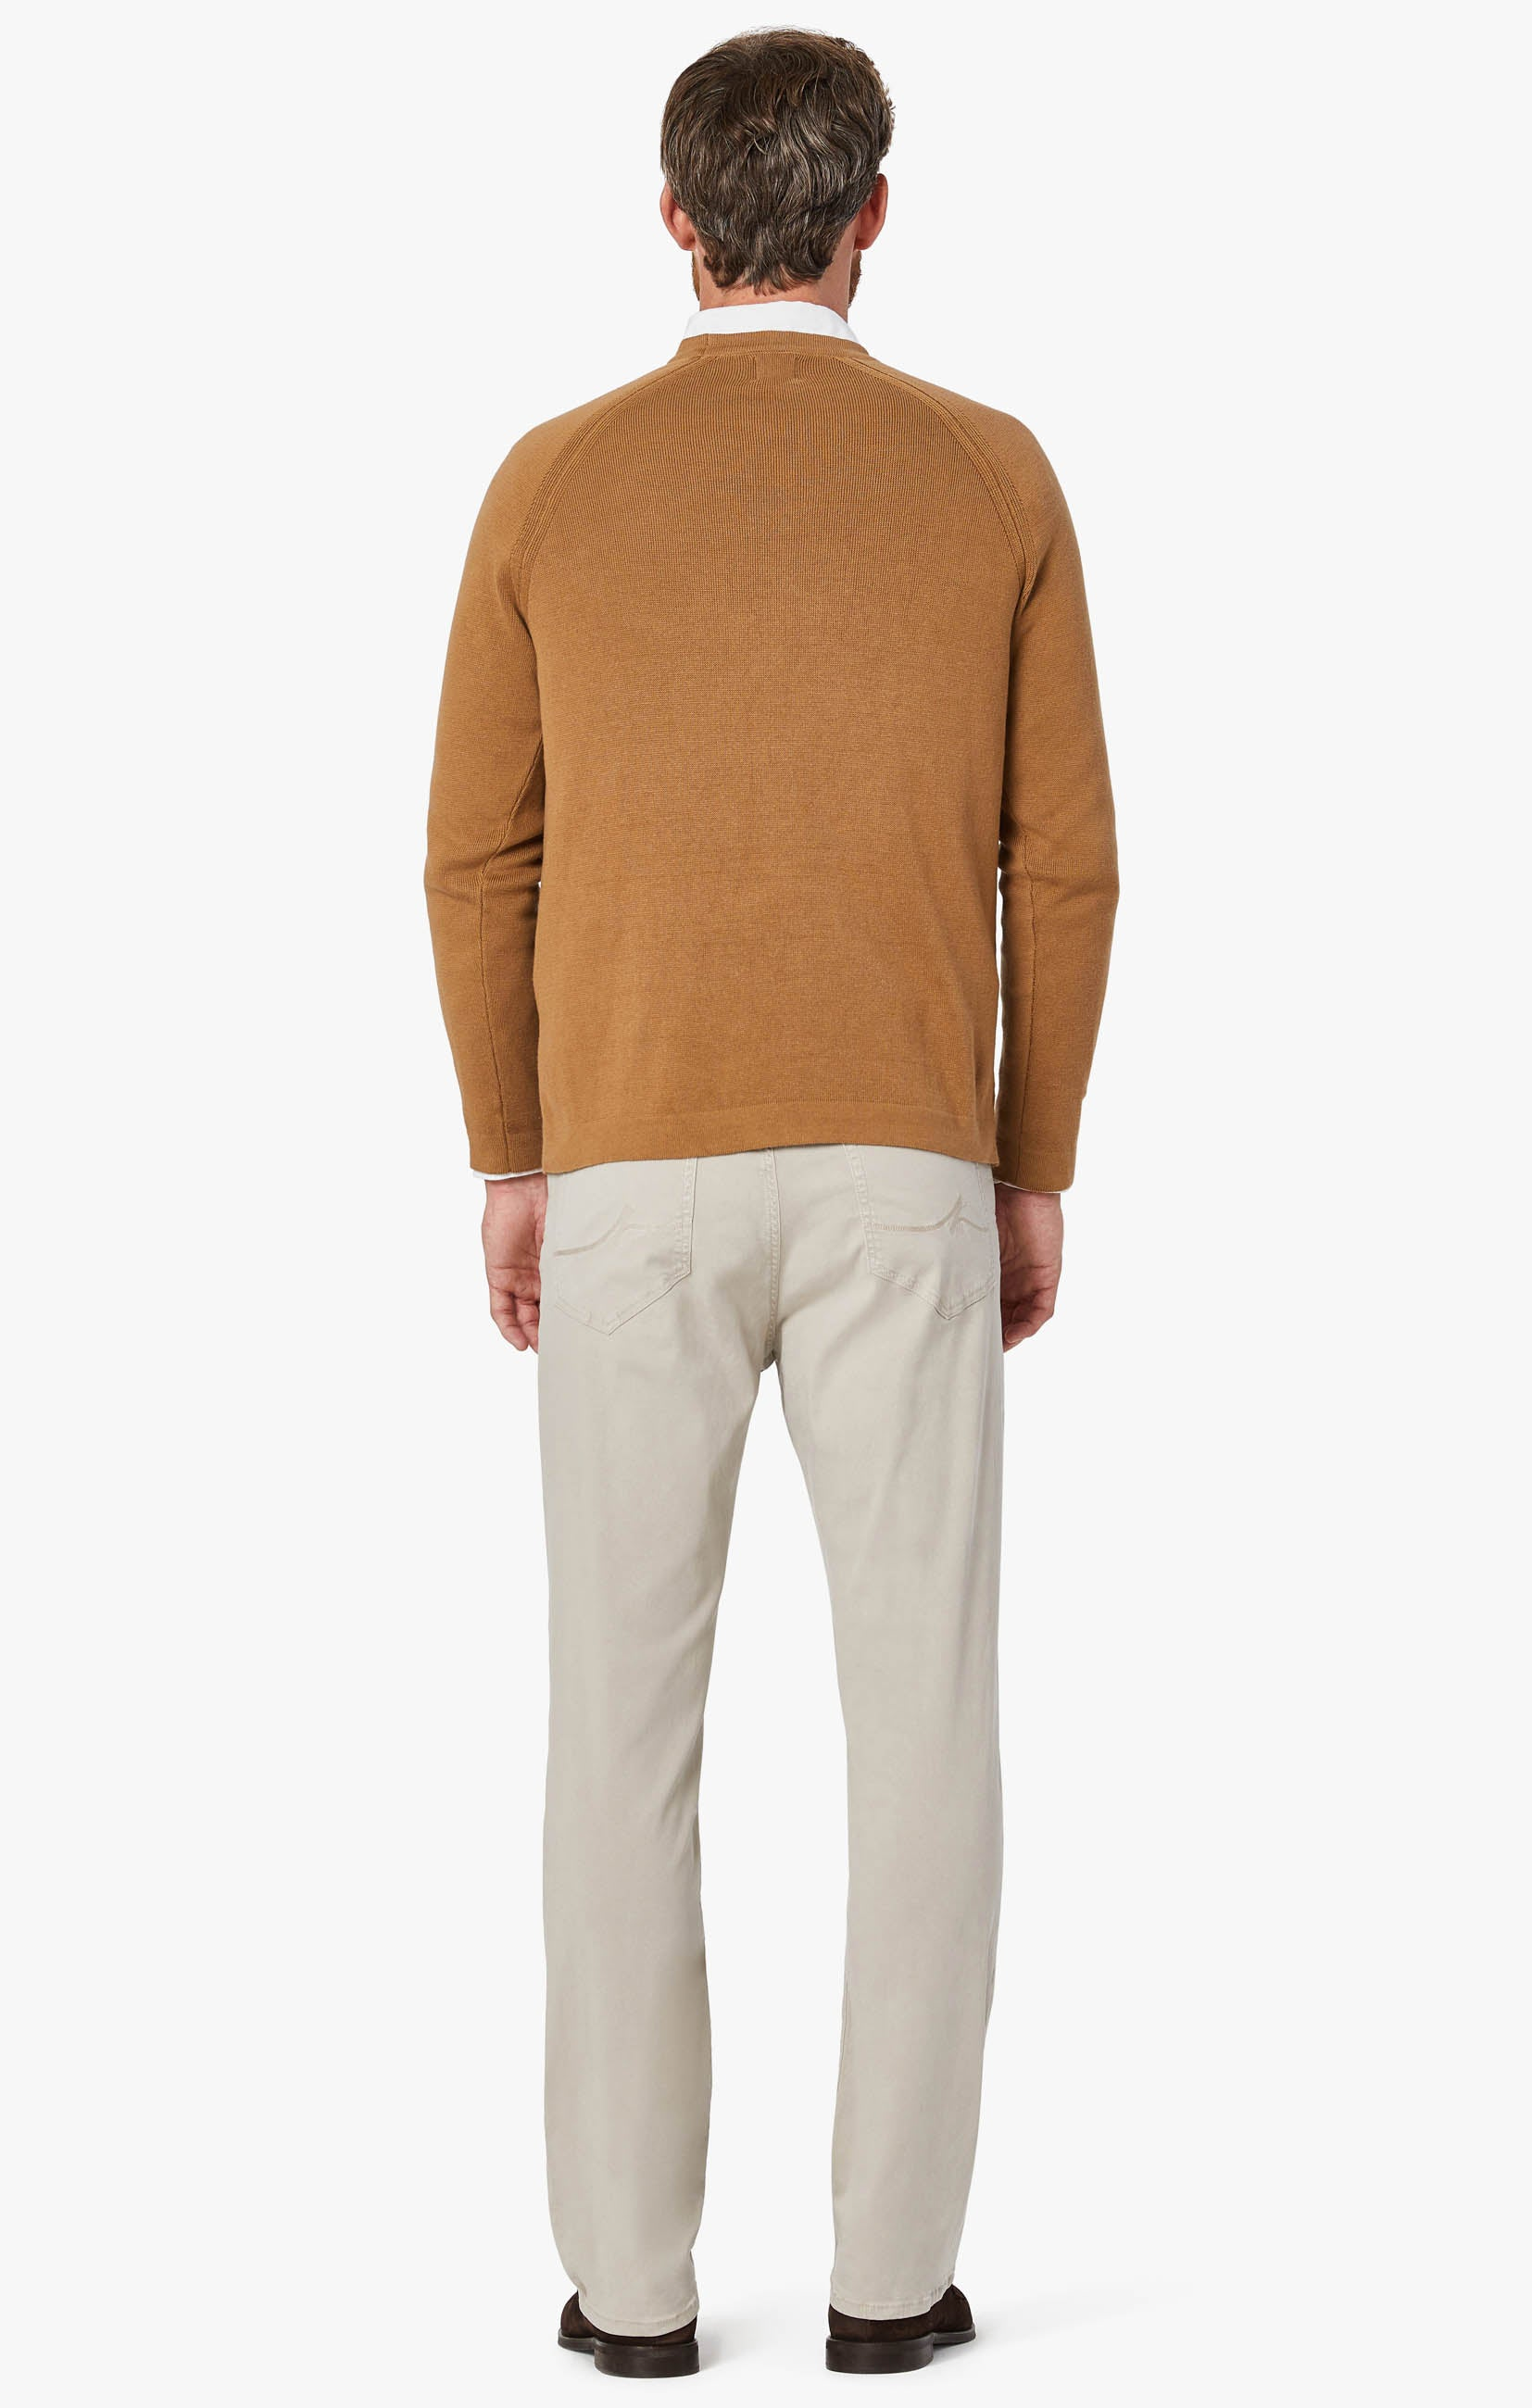 Charisma Relaxed Straight Leg Pants in Dawn Twill Image 5